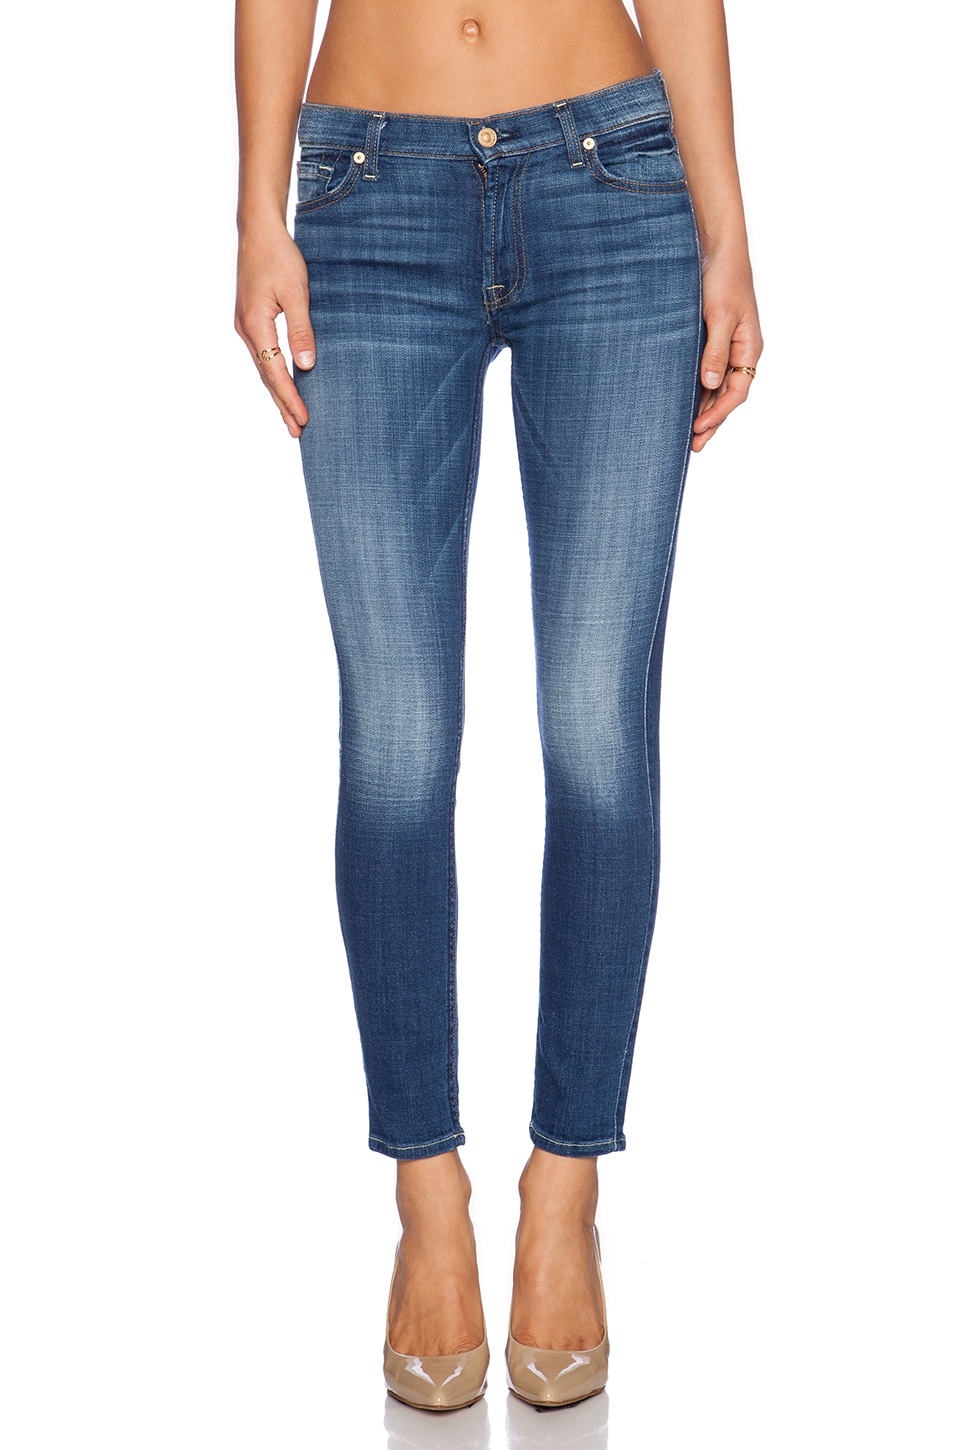 7 For All Mankind Ankle Skinny in Medium Broken Twill